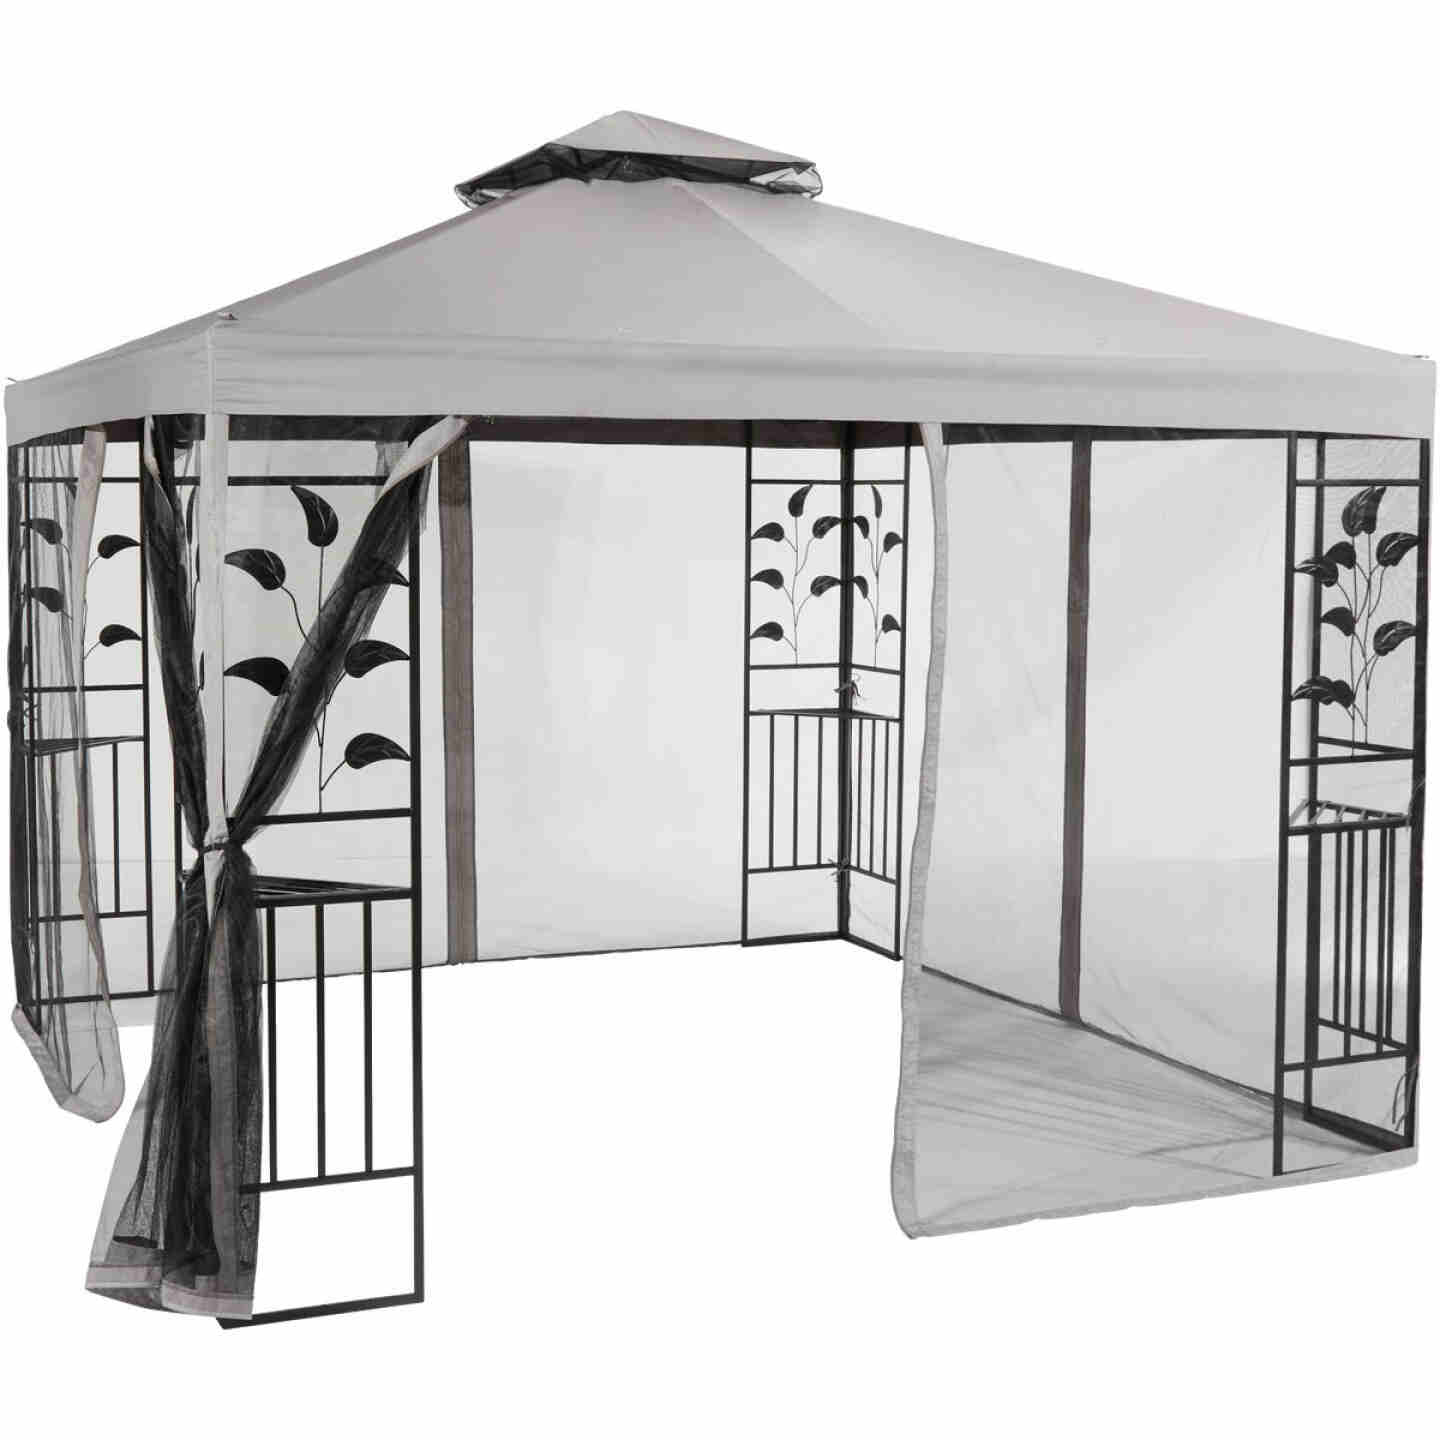 Outdoor Expressions 12 Ft. x 12 Ft. Gray & Black Steel Gazebo with Sides Image 9